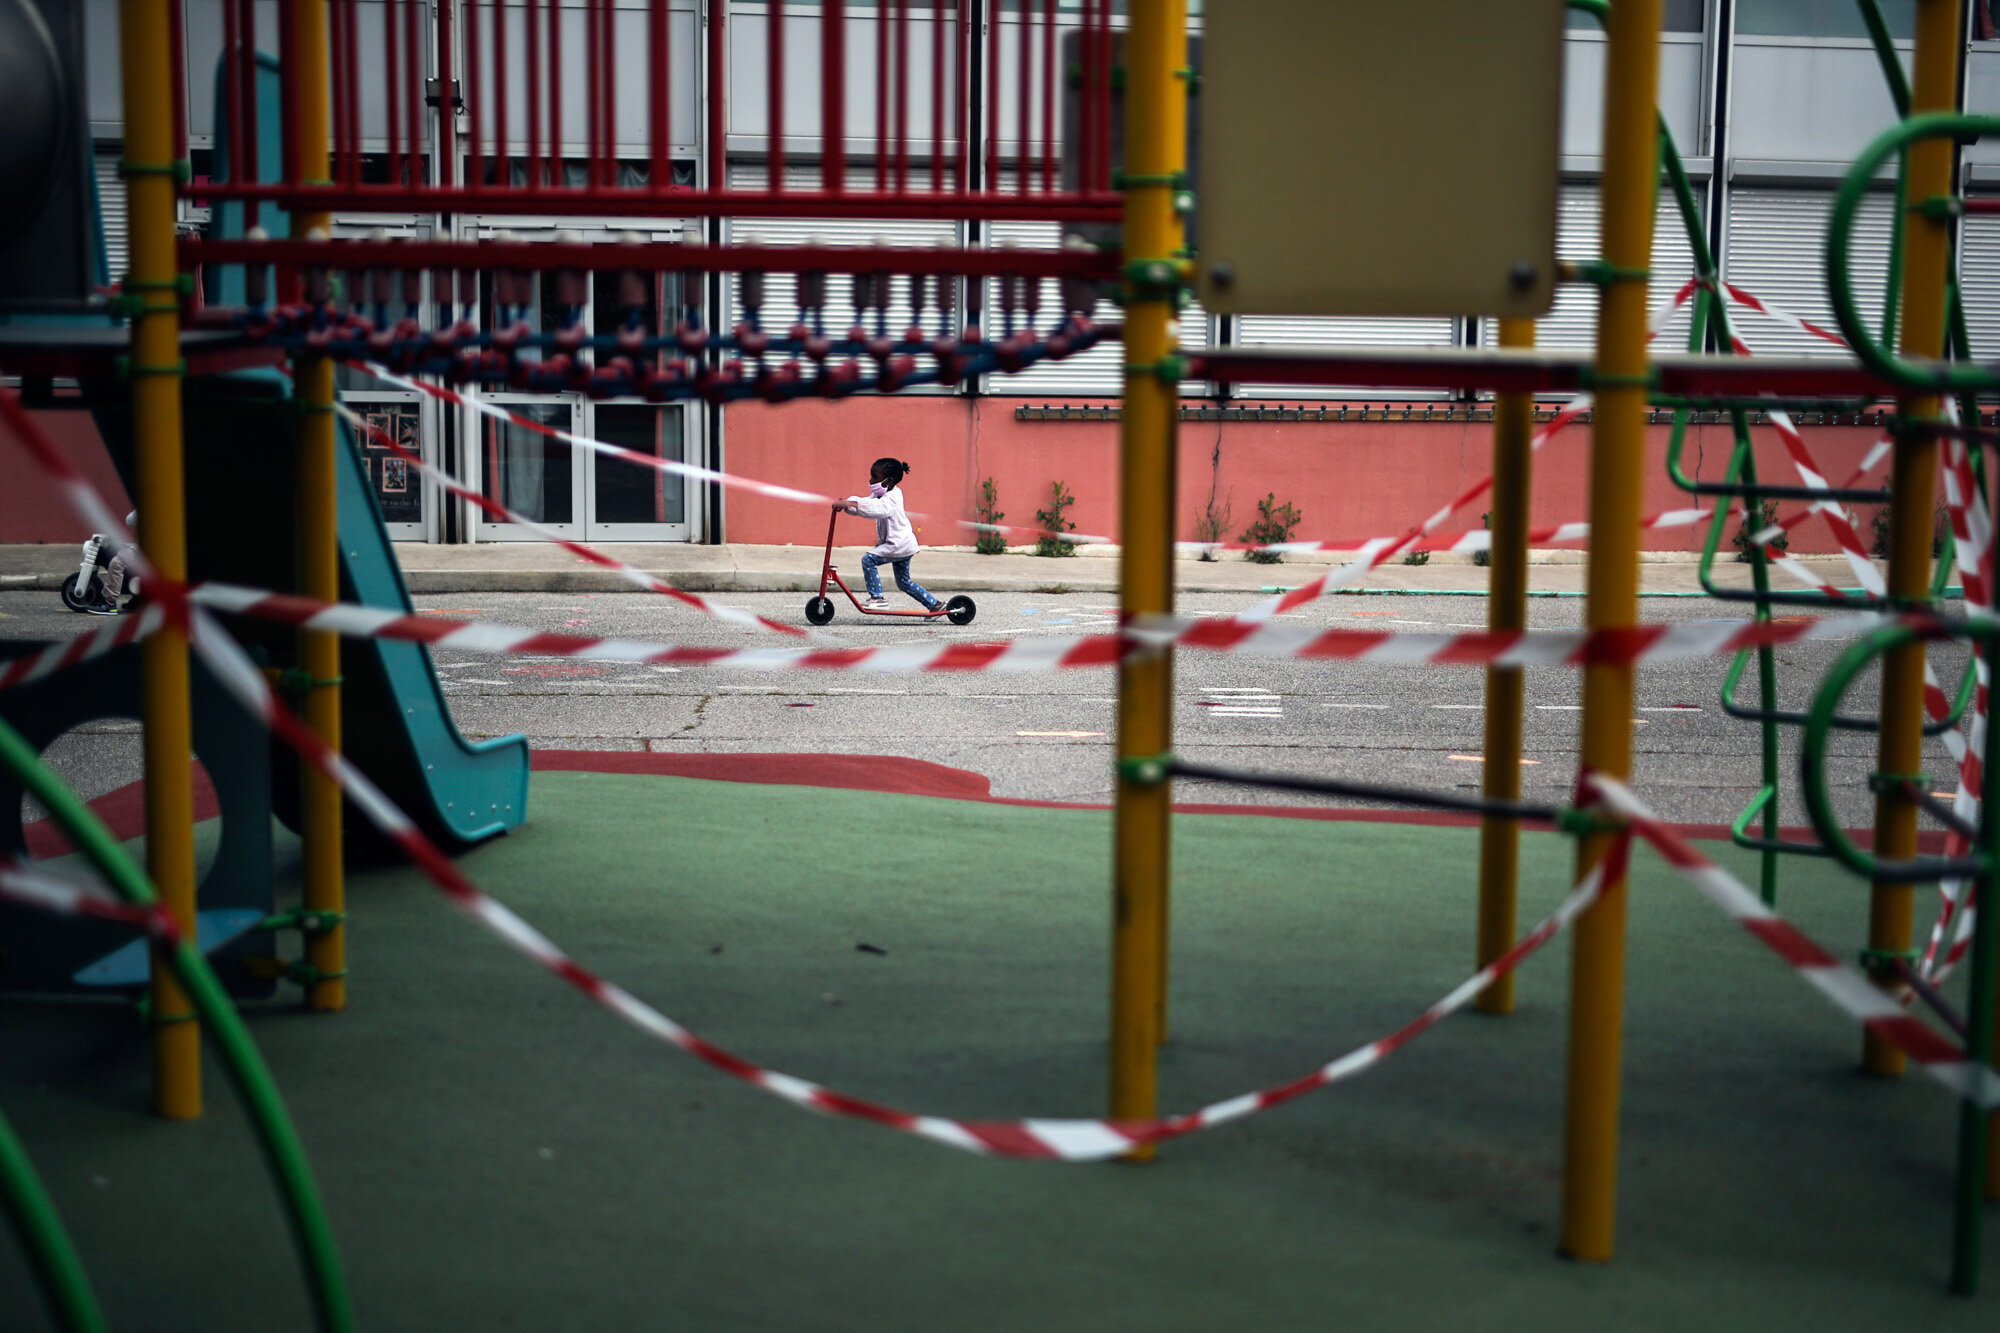 A girl rides a scooter past the Saint-Tronc Castelroc primary school playground, closed to prevent the spread of the coronavirus, in Marseille, France, on May 14, 2020. (AP Photo/Daniel Cole)